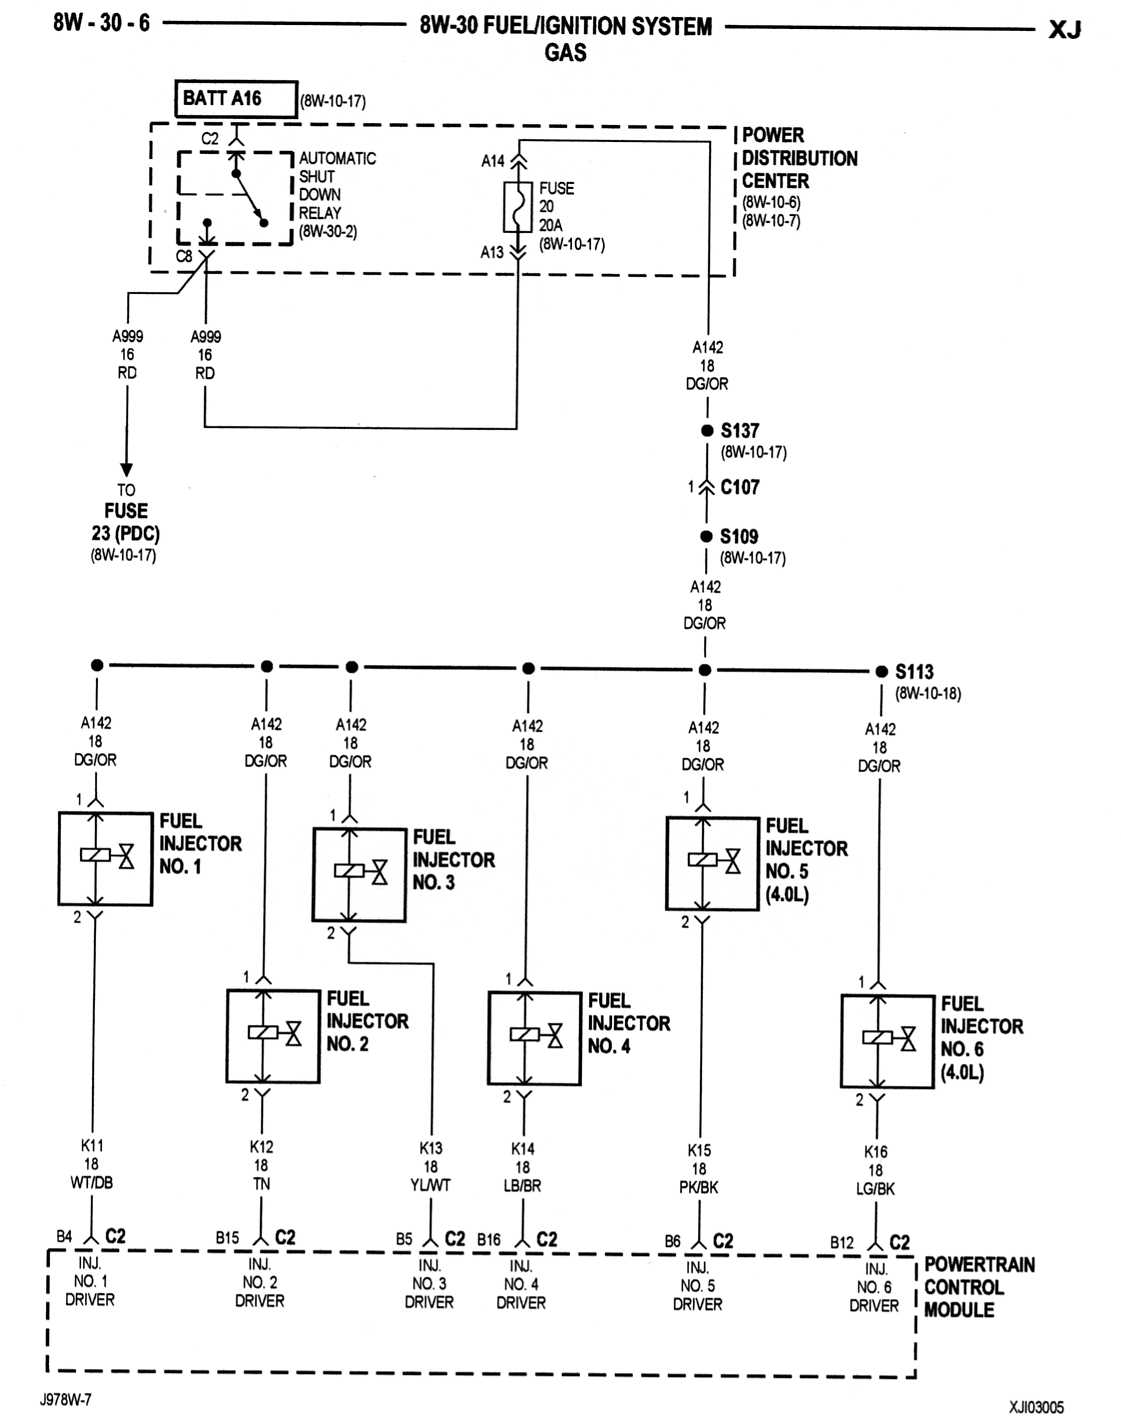 hight resolution of 1997 jeep wrangler fuse diagram fuel injector wiring diagram general 1997 jeep wrangler fuse diagram fuel injector